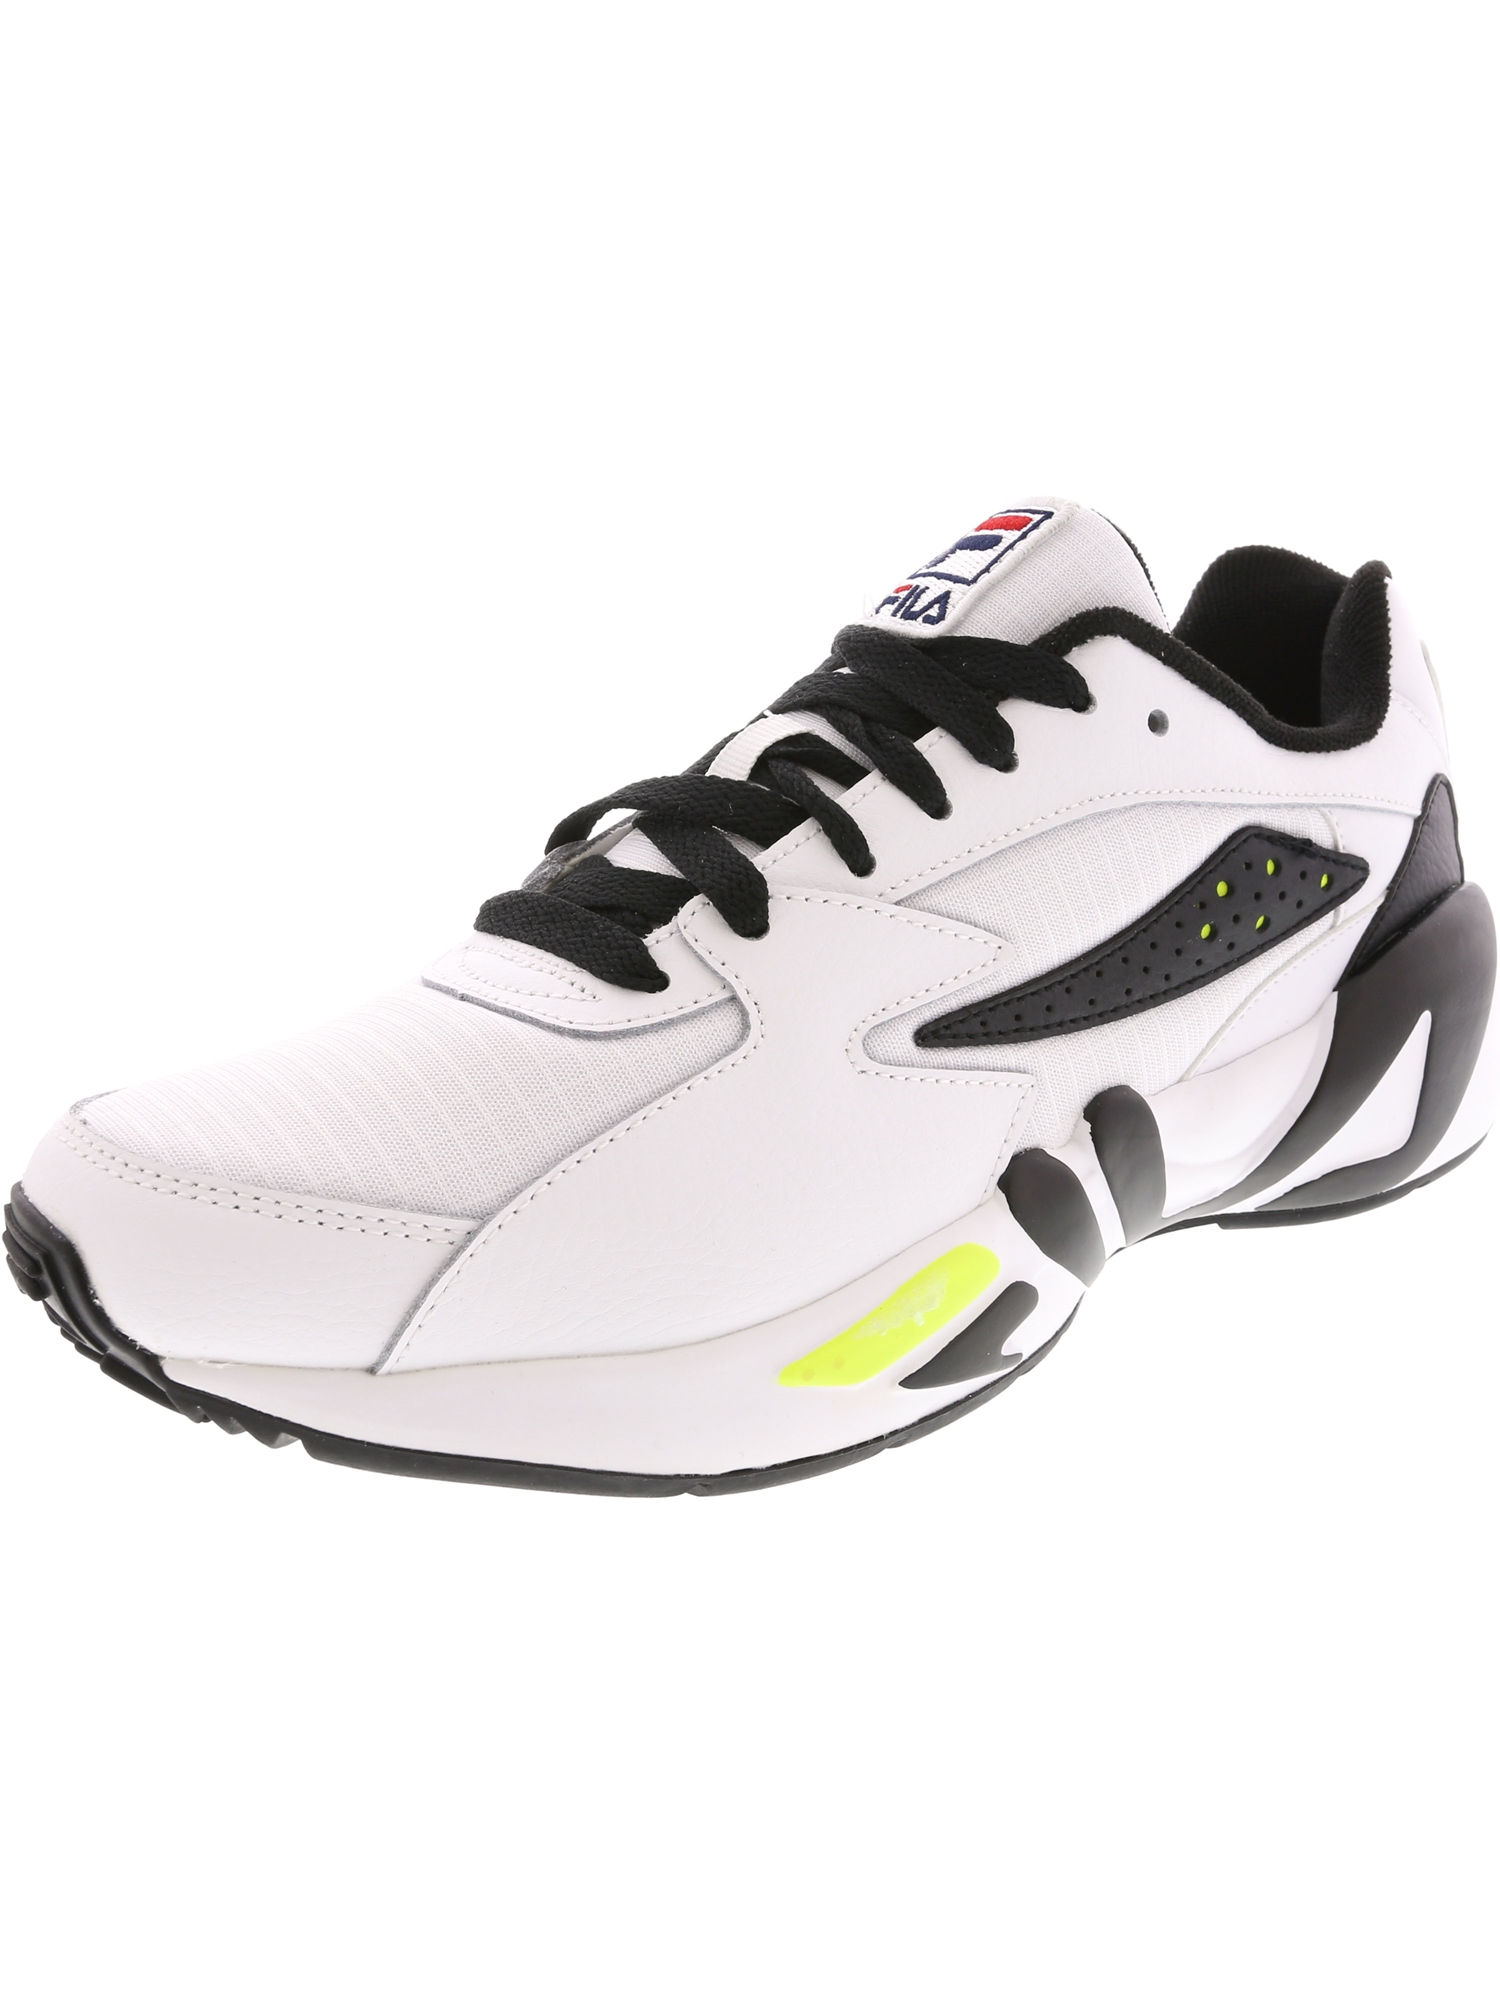 Fila Men?s Mindblower SLV Athletic Style Casual Sneaker - 10M - White / Black / Soft Yellow